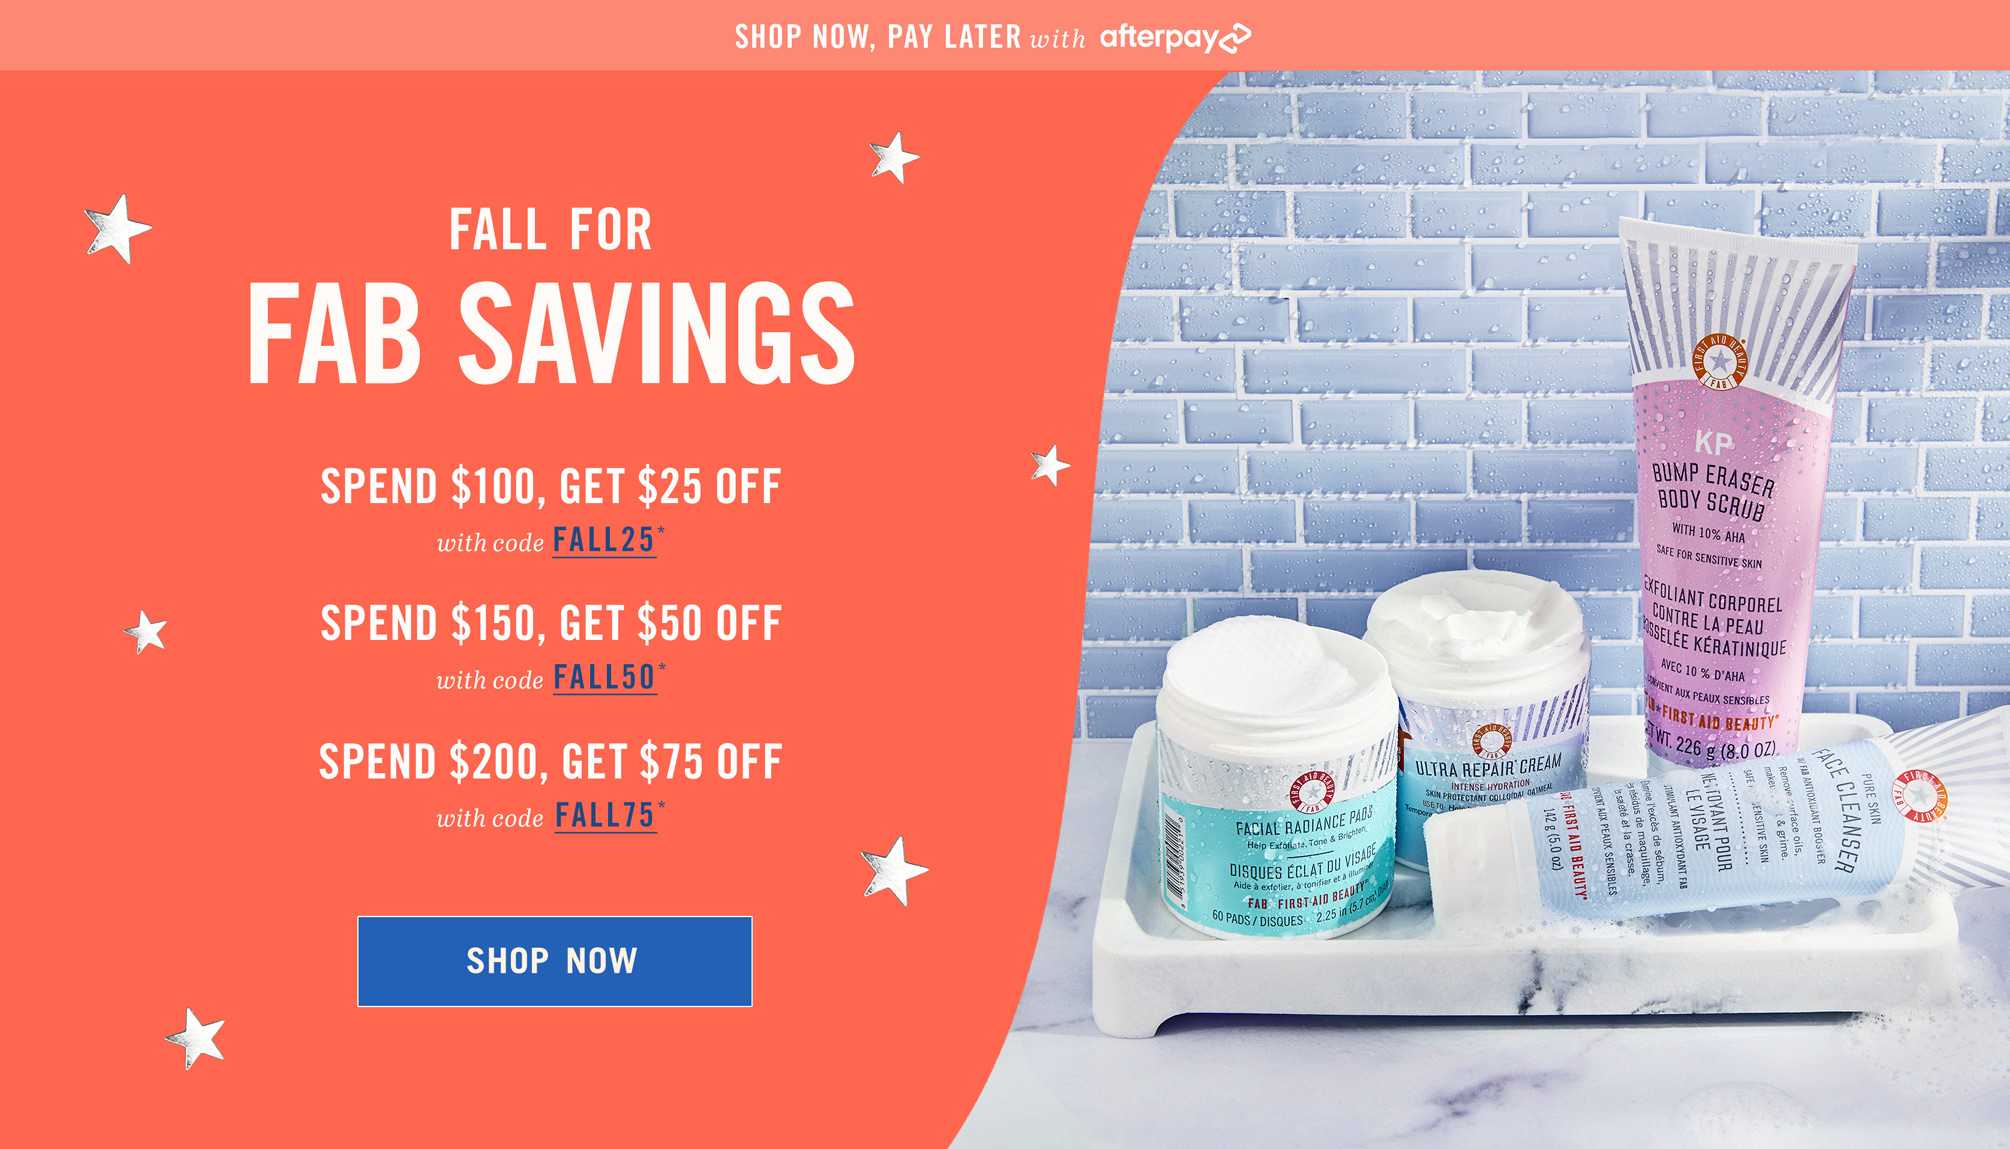 Fall For FAB Savings! Get up to $75 off your purchase!